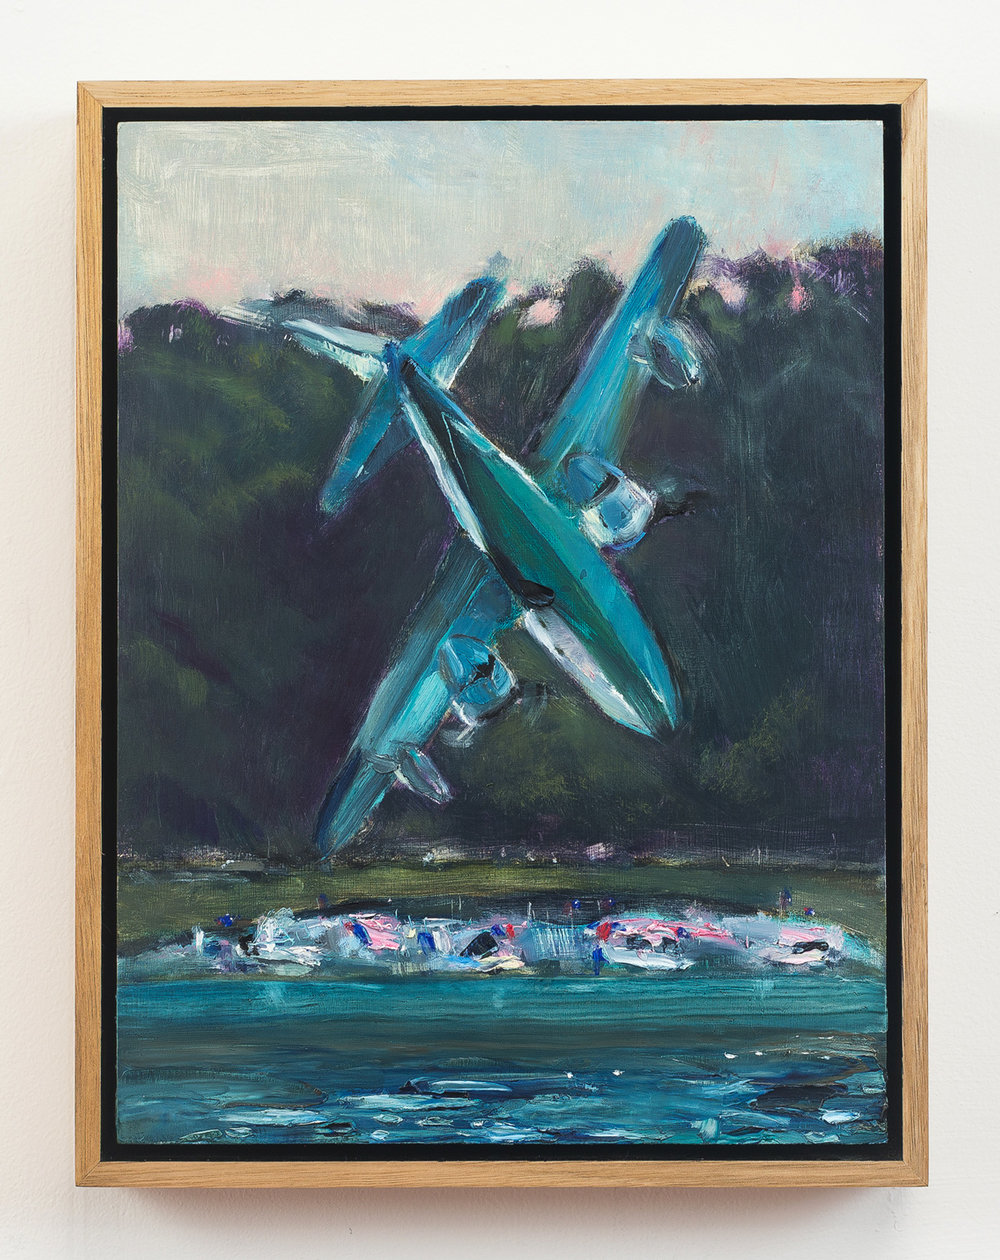 Plane  2018 Oil on Wood, 33 x 25 cm  Photo: Ethan Blackburn